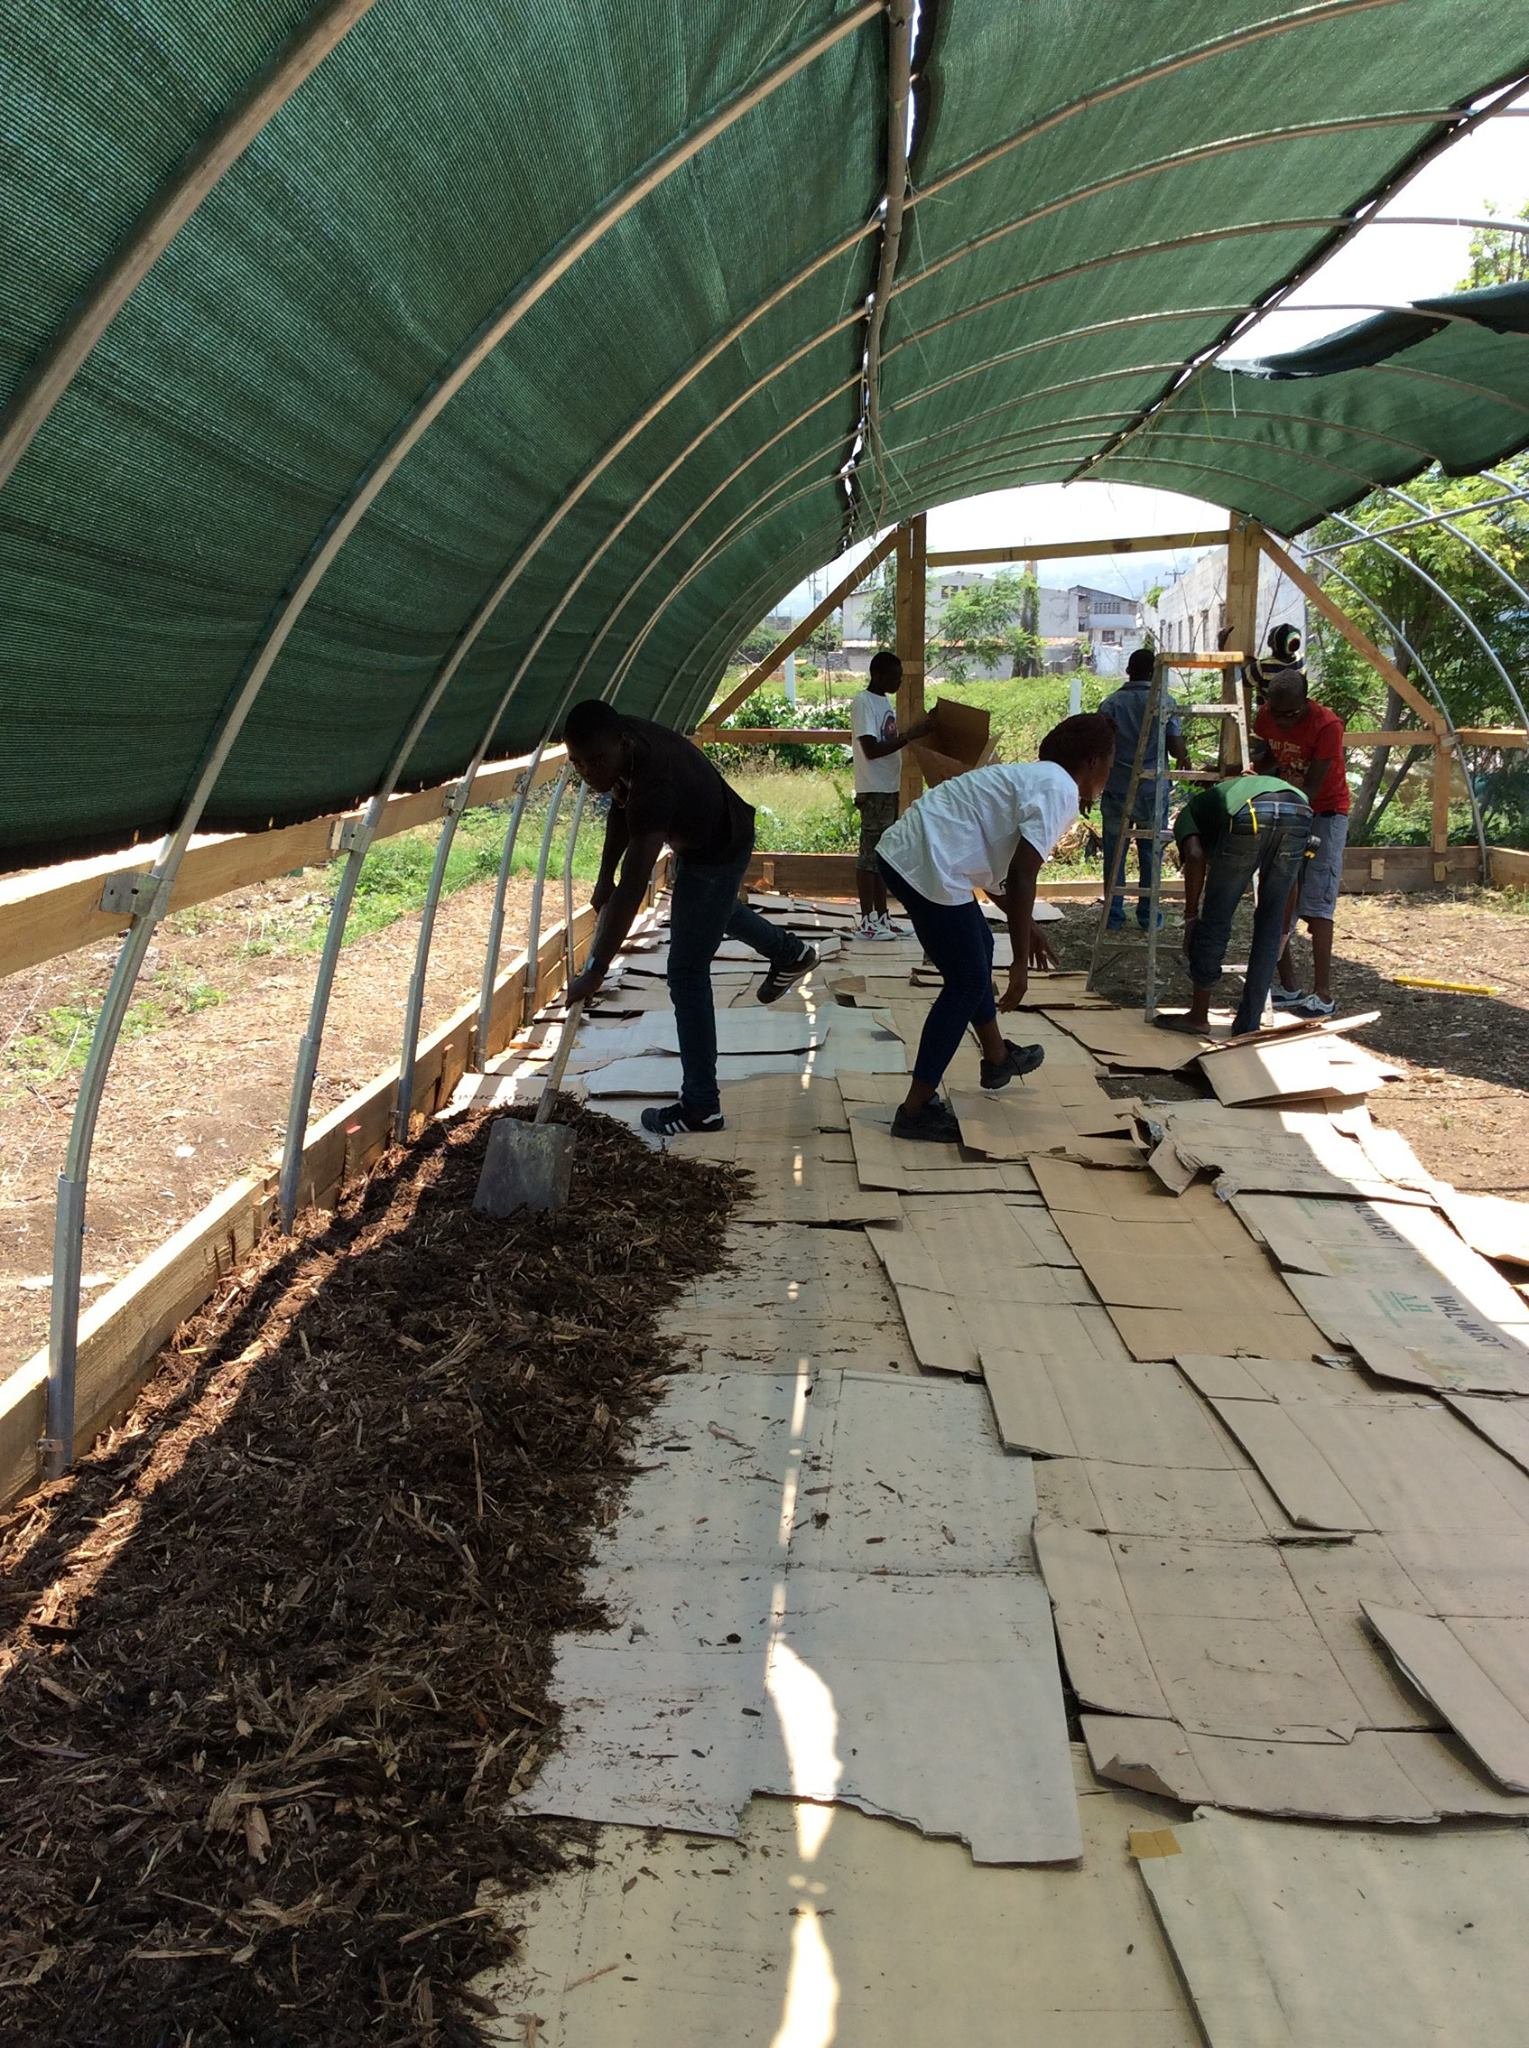 Prepping the ground. Layer of cardboard covered by sugar cane mulch